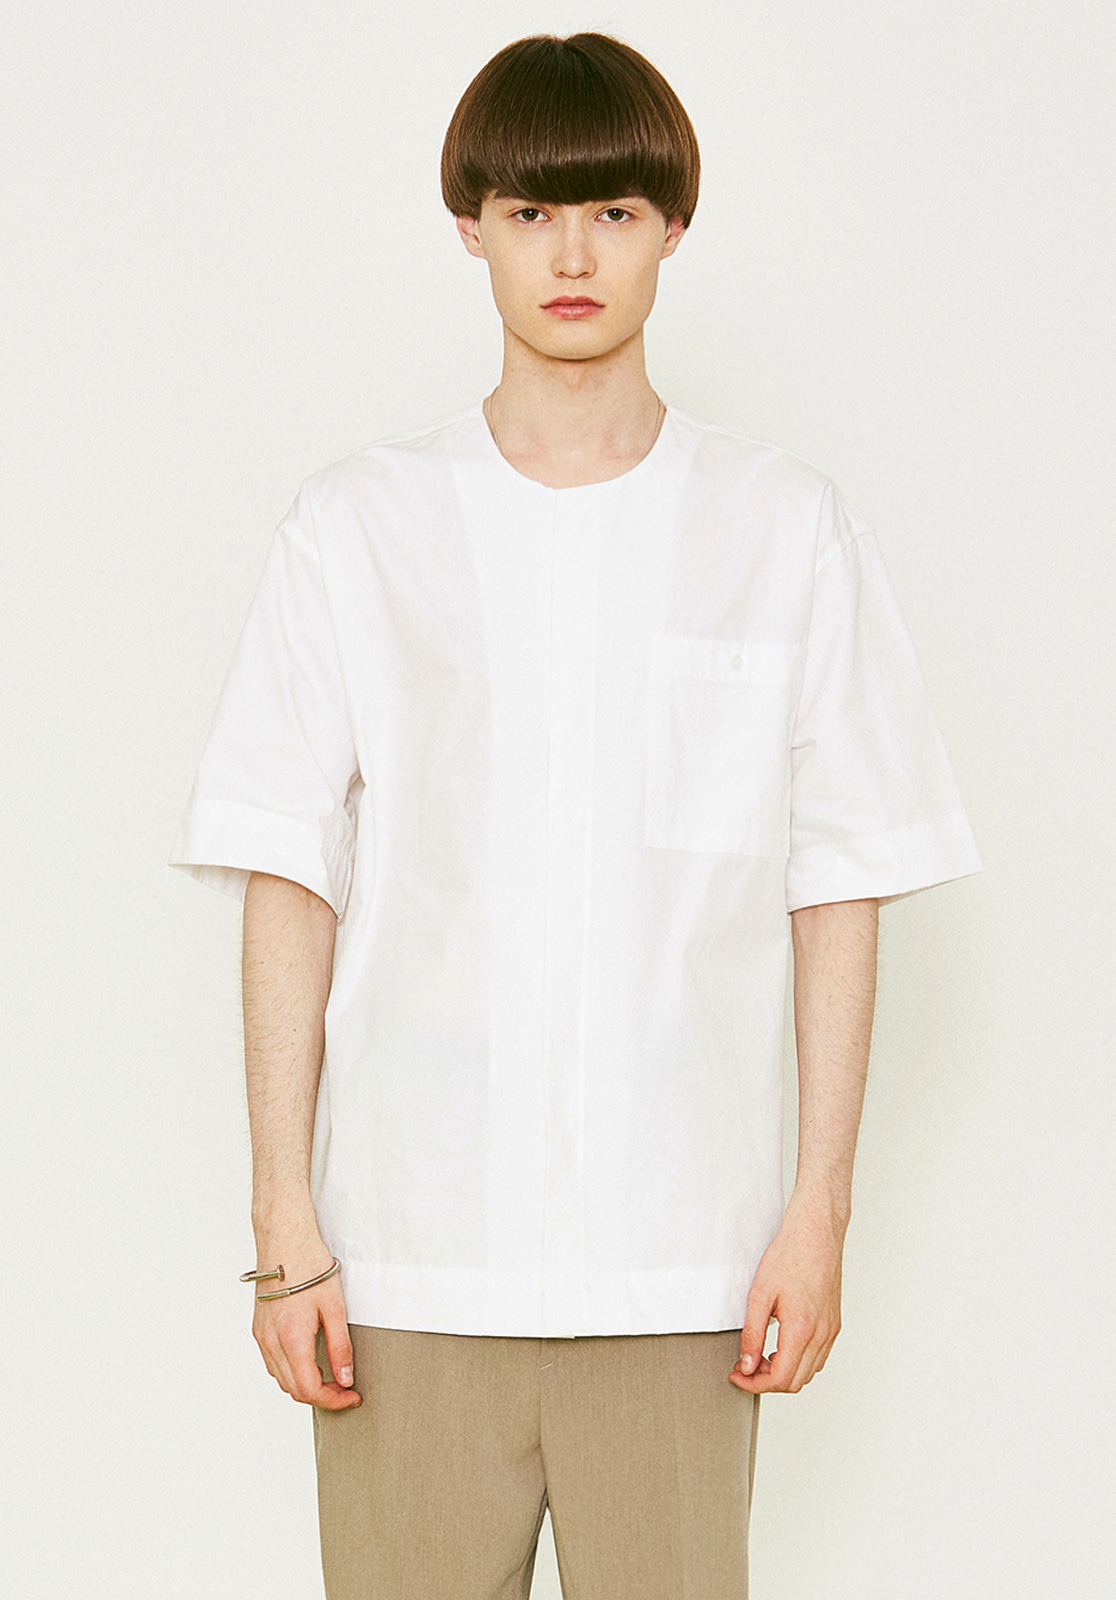 V455 POCKET ROUND HALF-SHIRTS WHITE